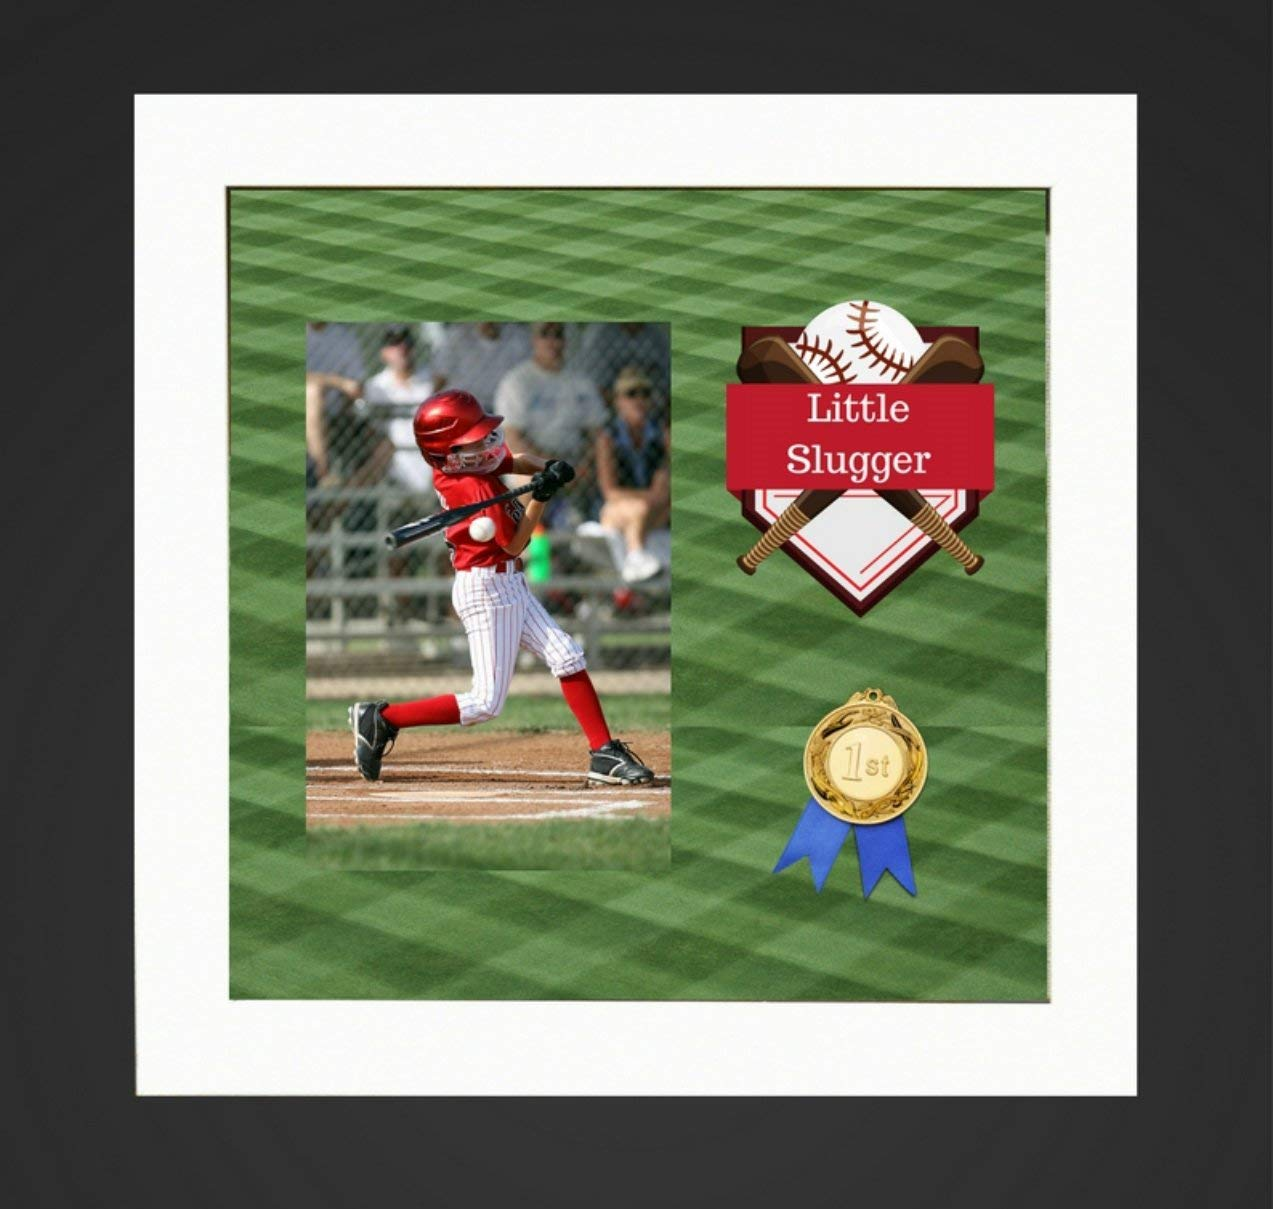 """8x8"""" White Display Shadow Box Frame (2-pack) with Linen Background - Ready To Hang Shadowbox Picture Frame - Easy to Use - Box Display, Baby and Sports Memorabilia, Uniforms, Medals, Pins, Wedding."""